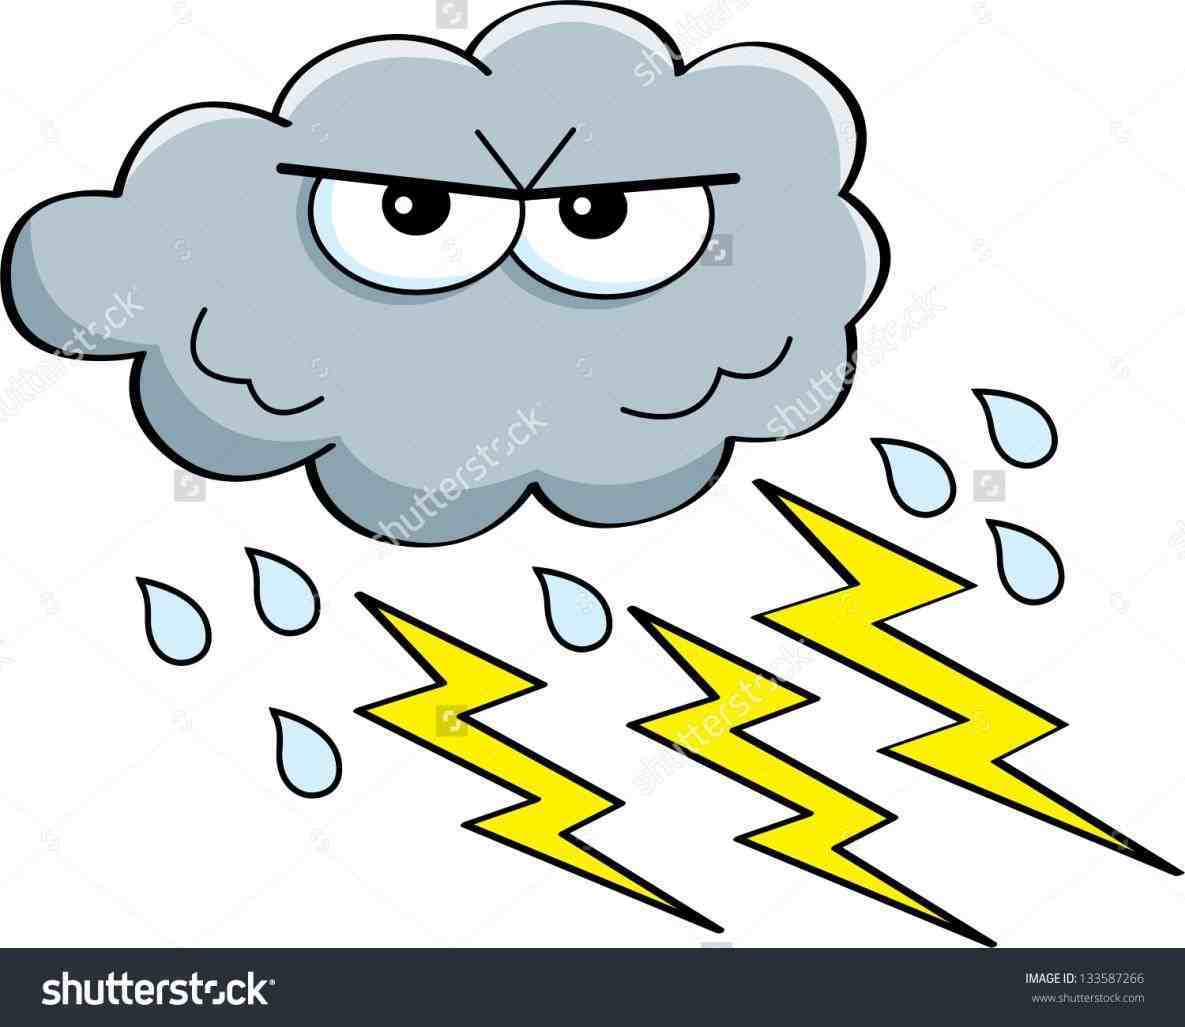 And In Color Lightening Lighting Storm C-And in color lightening lighting storm clipart clipart thunderstorm cloud  pencil and in color lightning storm-1